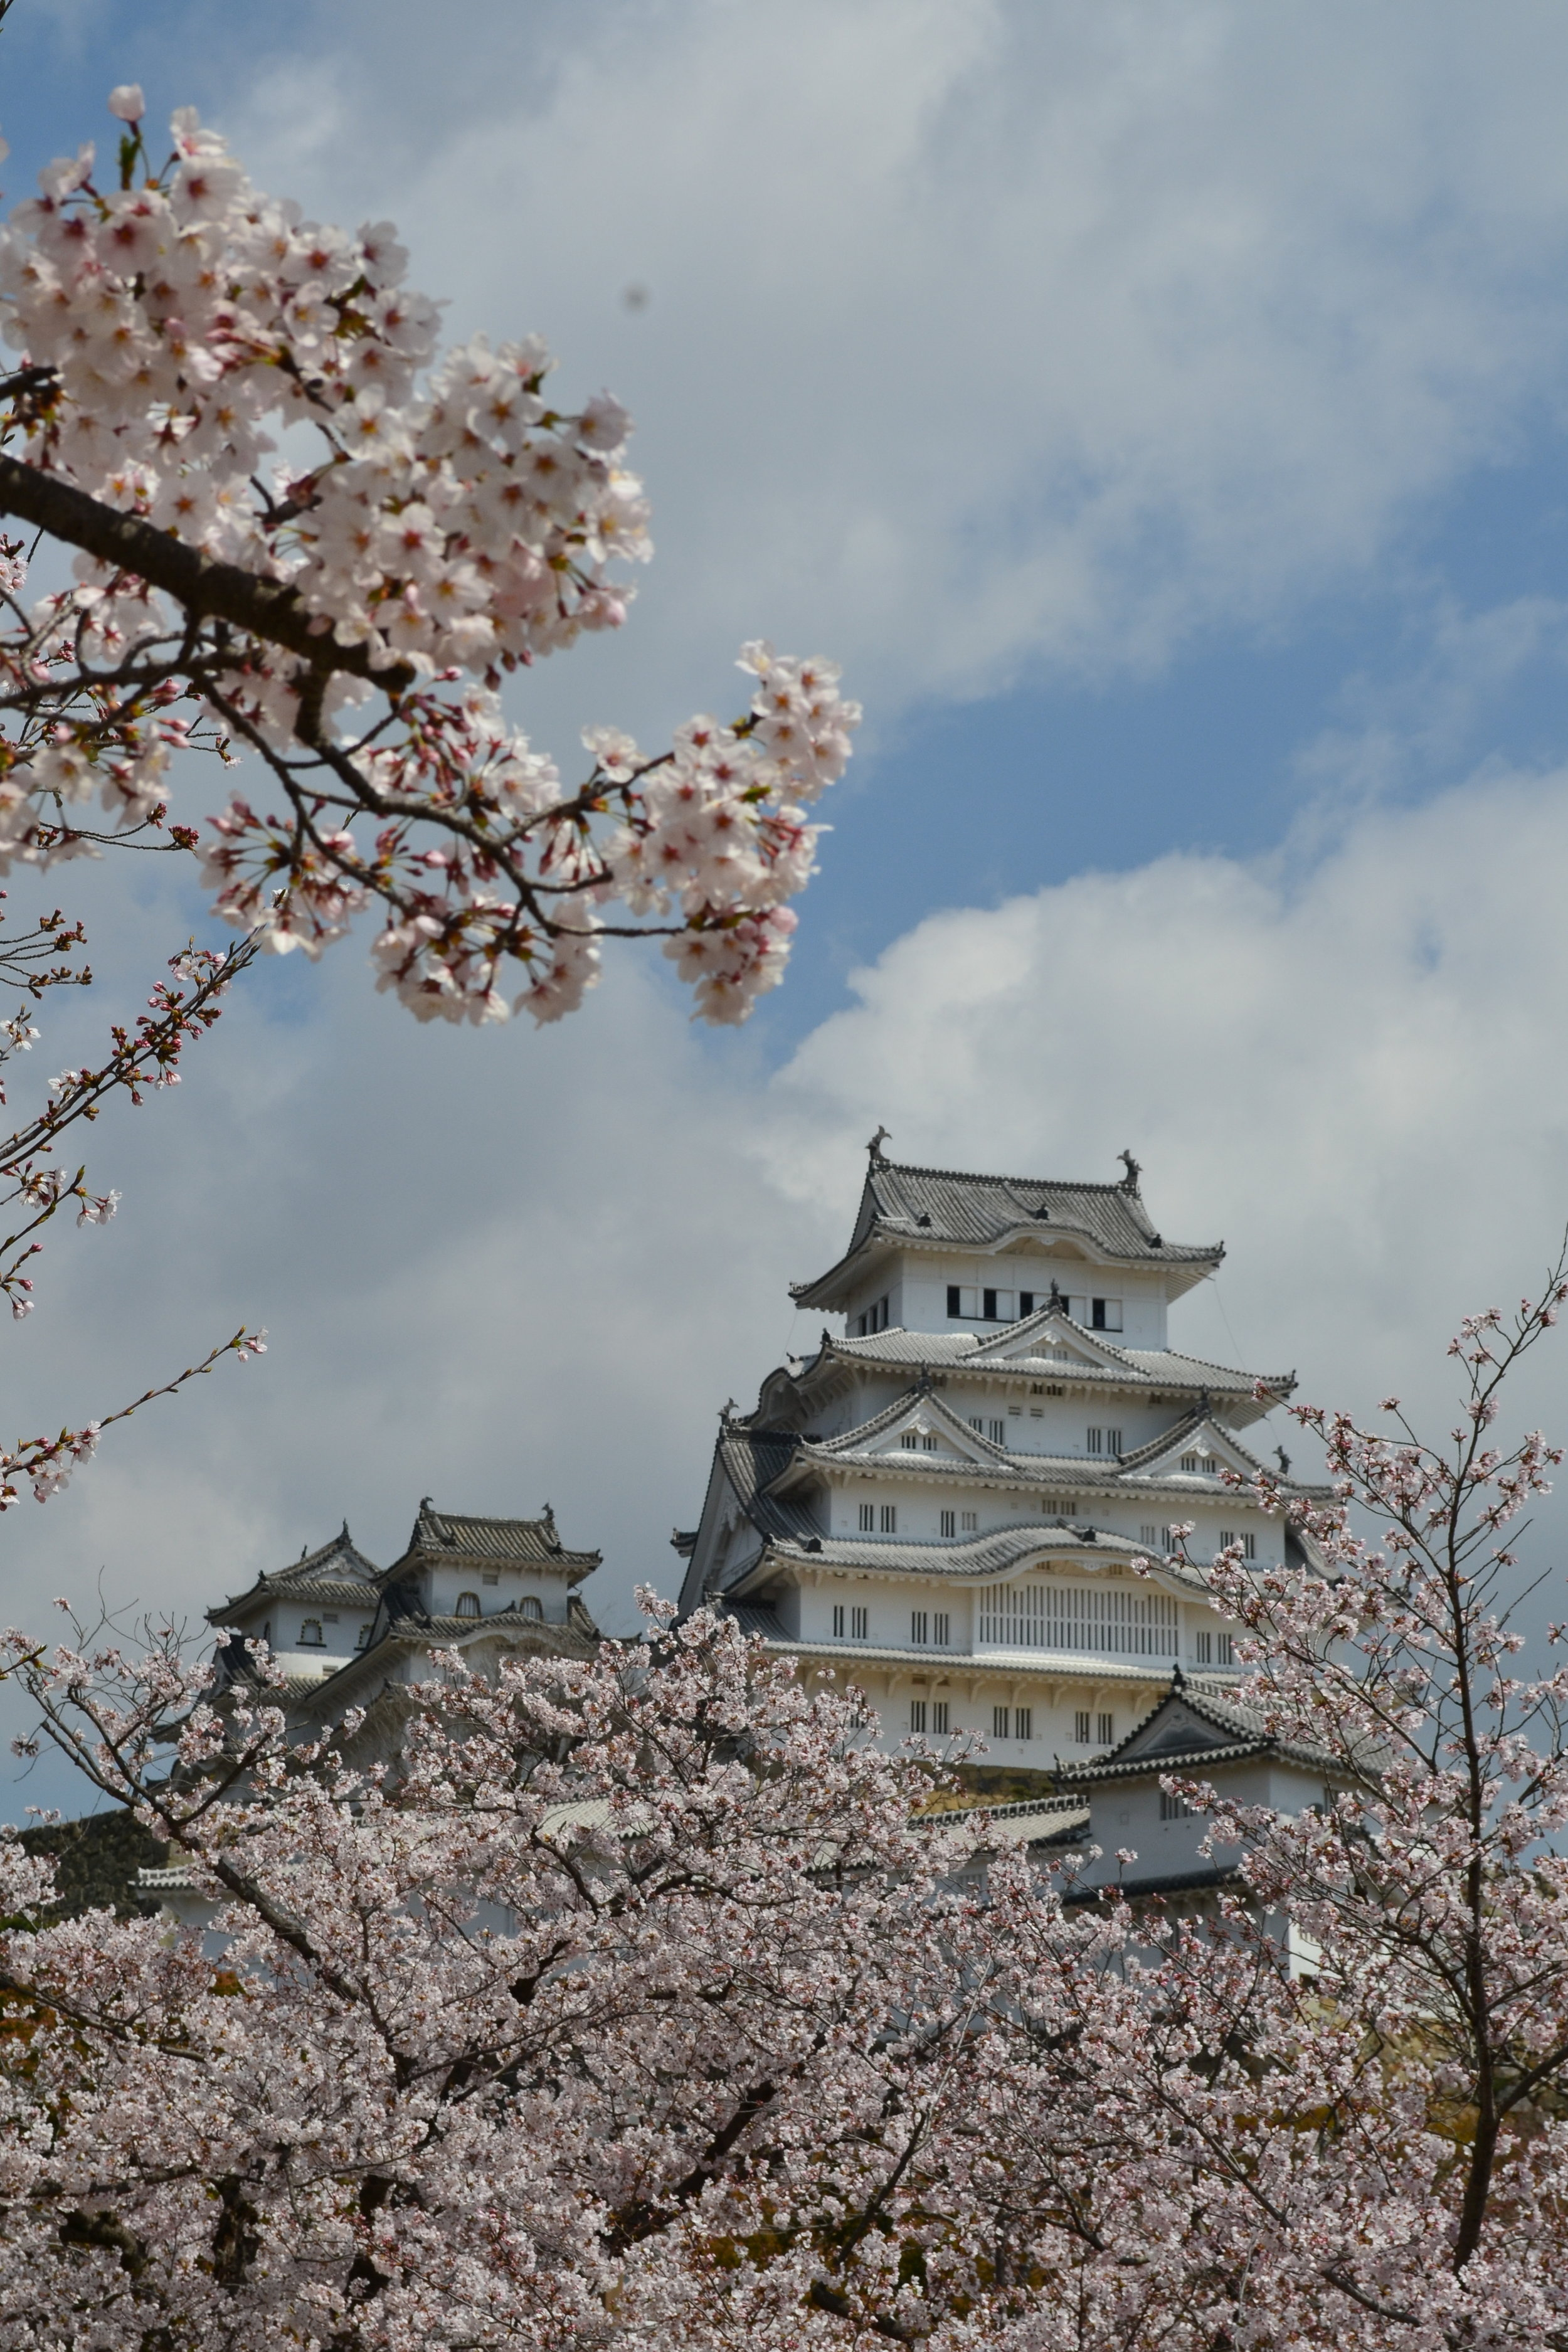 During peak season, these cherry blossoms can make anything look good. With the impressive Himeji Castle behind, there is no better sight in Himeji!